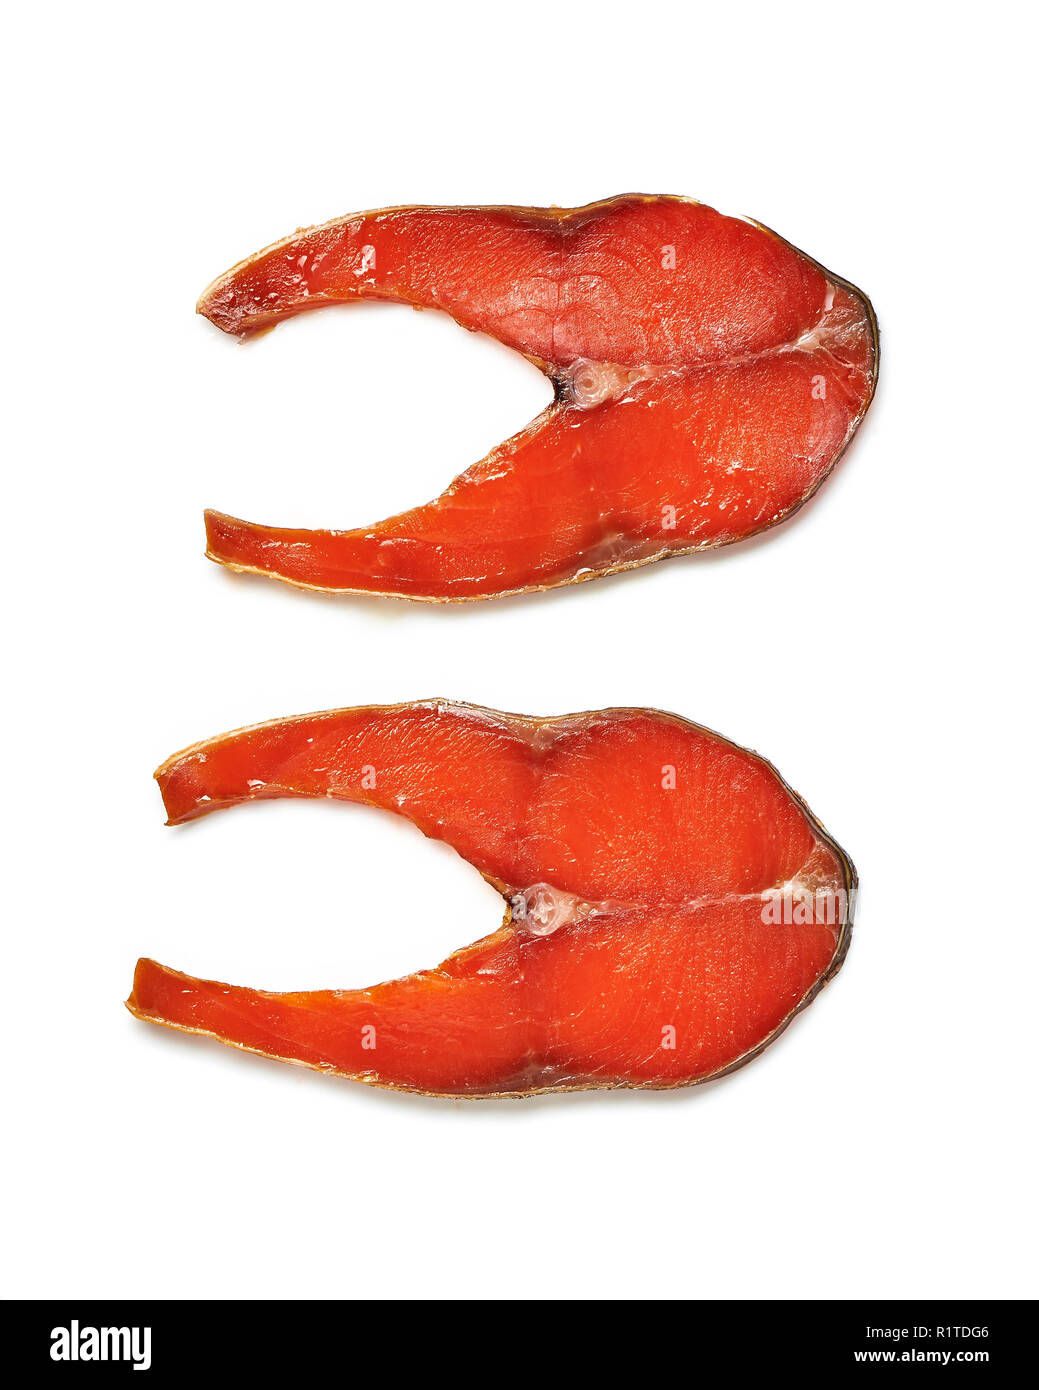 Slices of smoked red salmon isolated on white background. Top view. - Stock Image